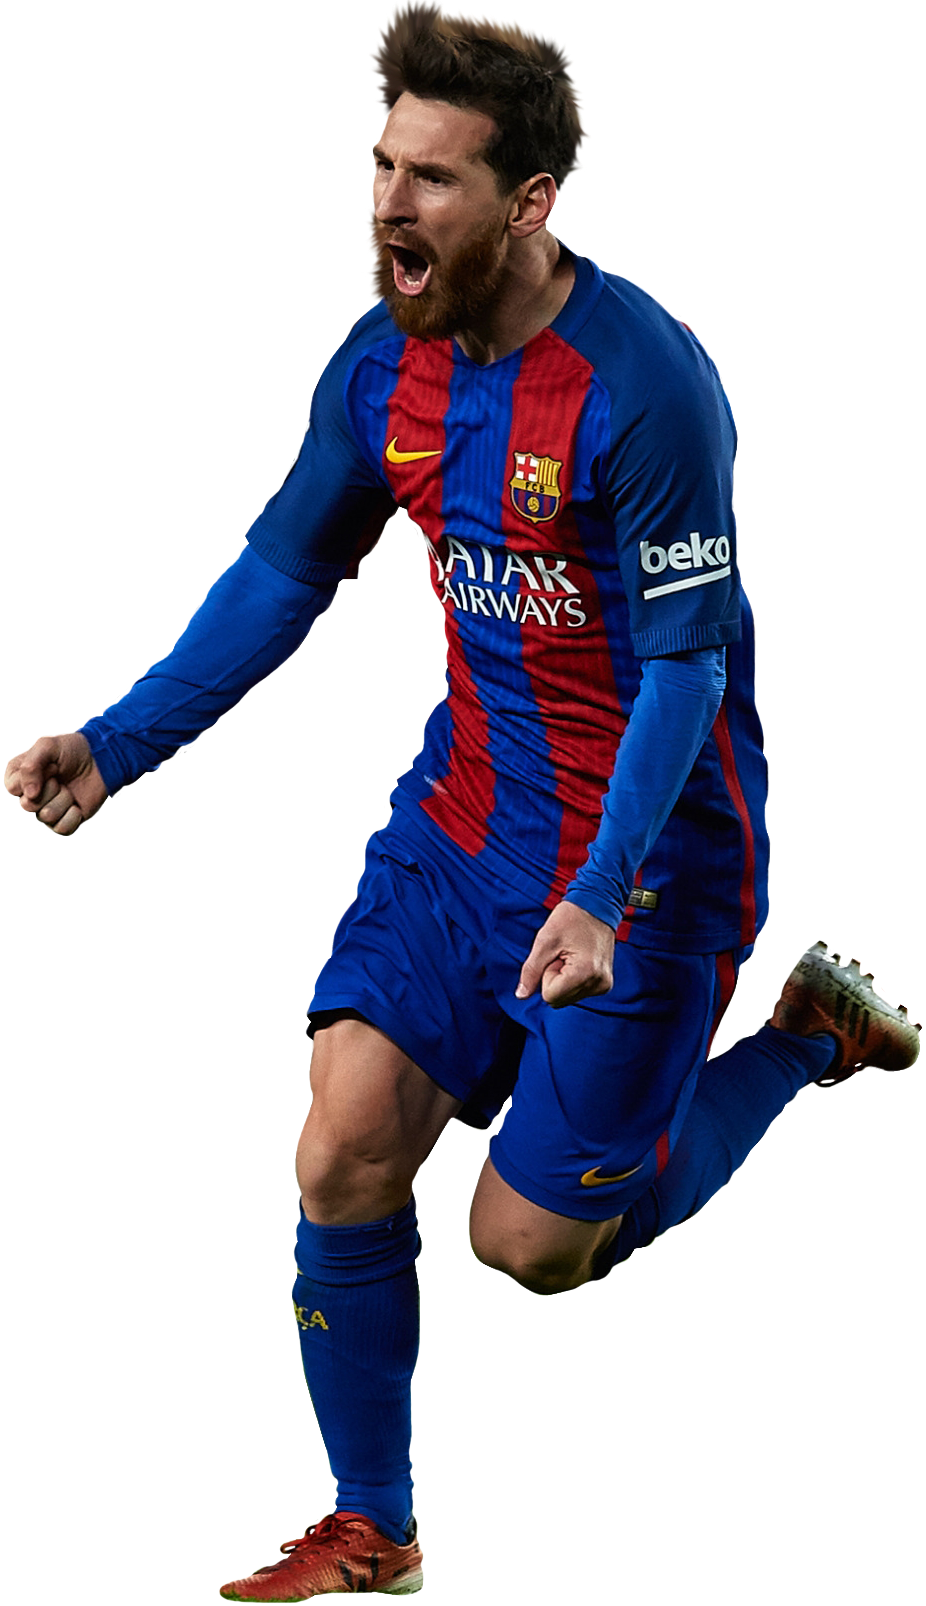 barcelona, lionel messi football render footyrenders #12177